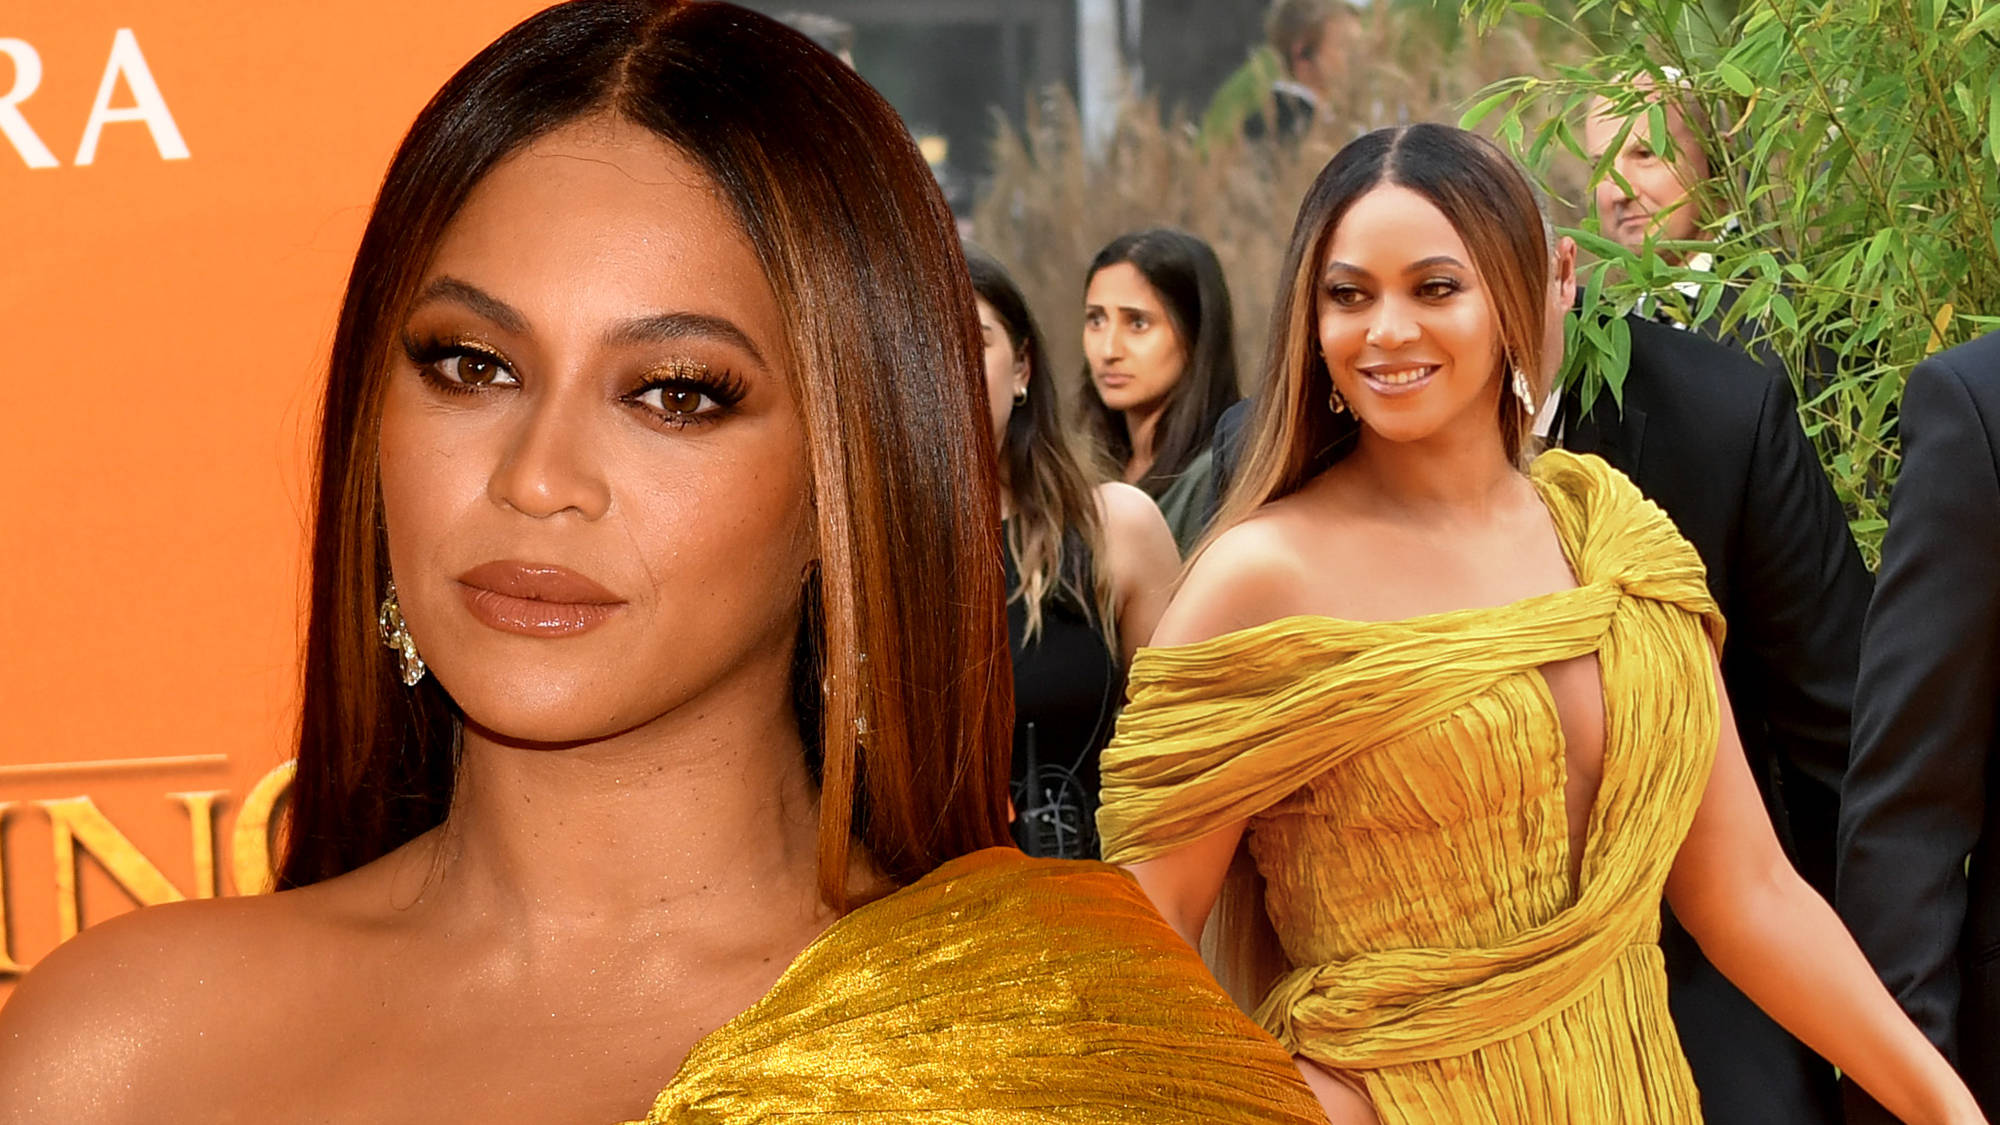 Beyoncé Pregnancy Rumours Sparked As Fans Discuss 'Nose And Face Changes'